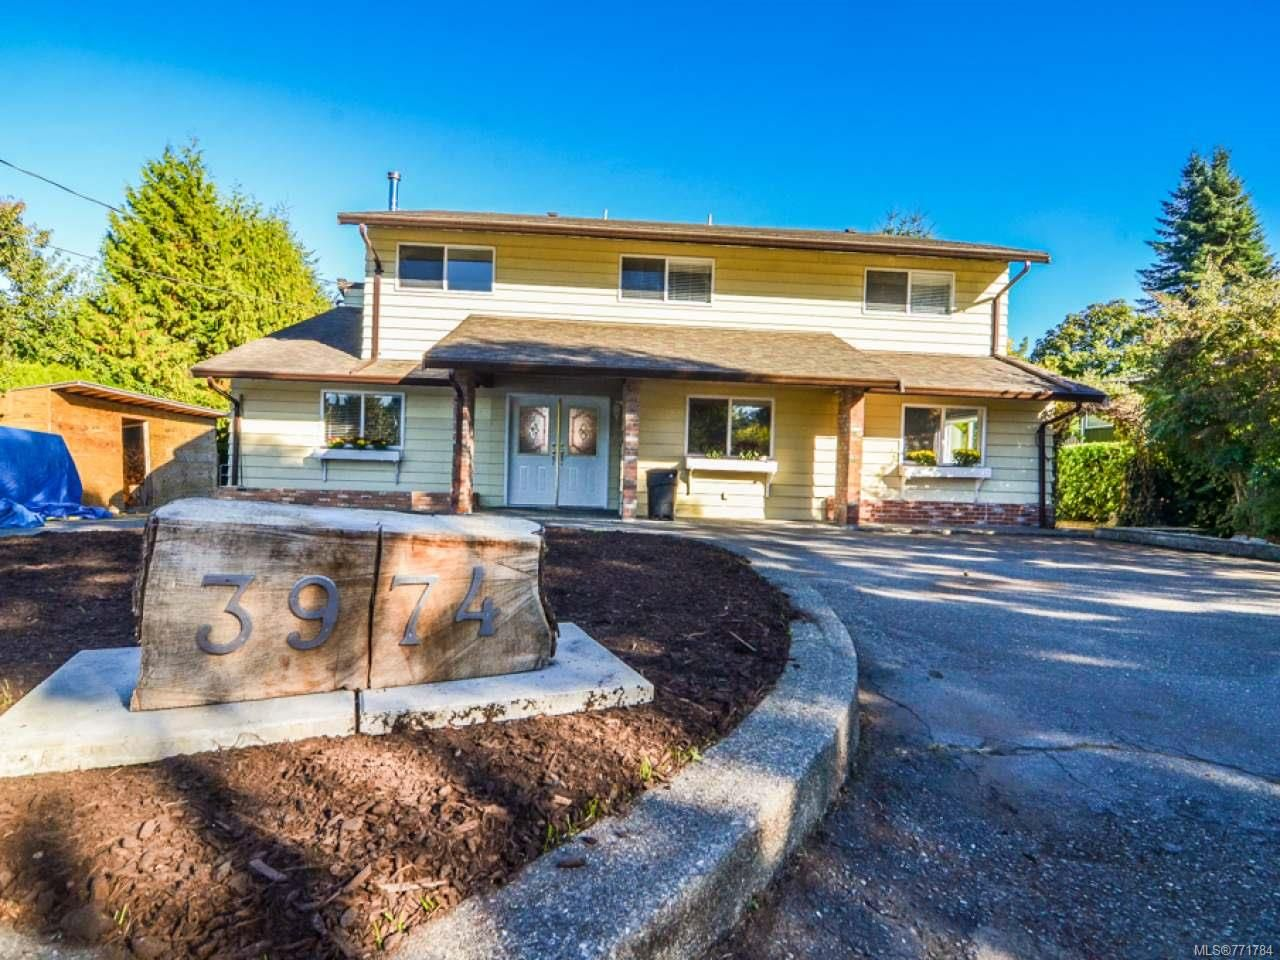 Main Photo: 3974 Dillman Rd in CAMPBELL RIVER: CR Campbell River South House for sale (Campbell River)  : MLS®# 771784